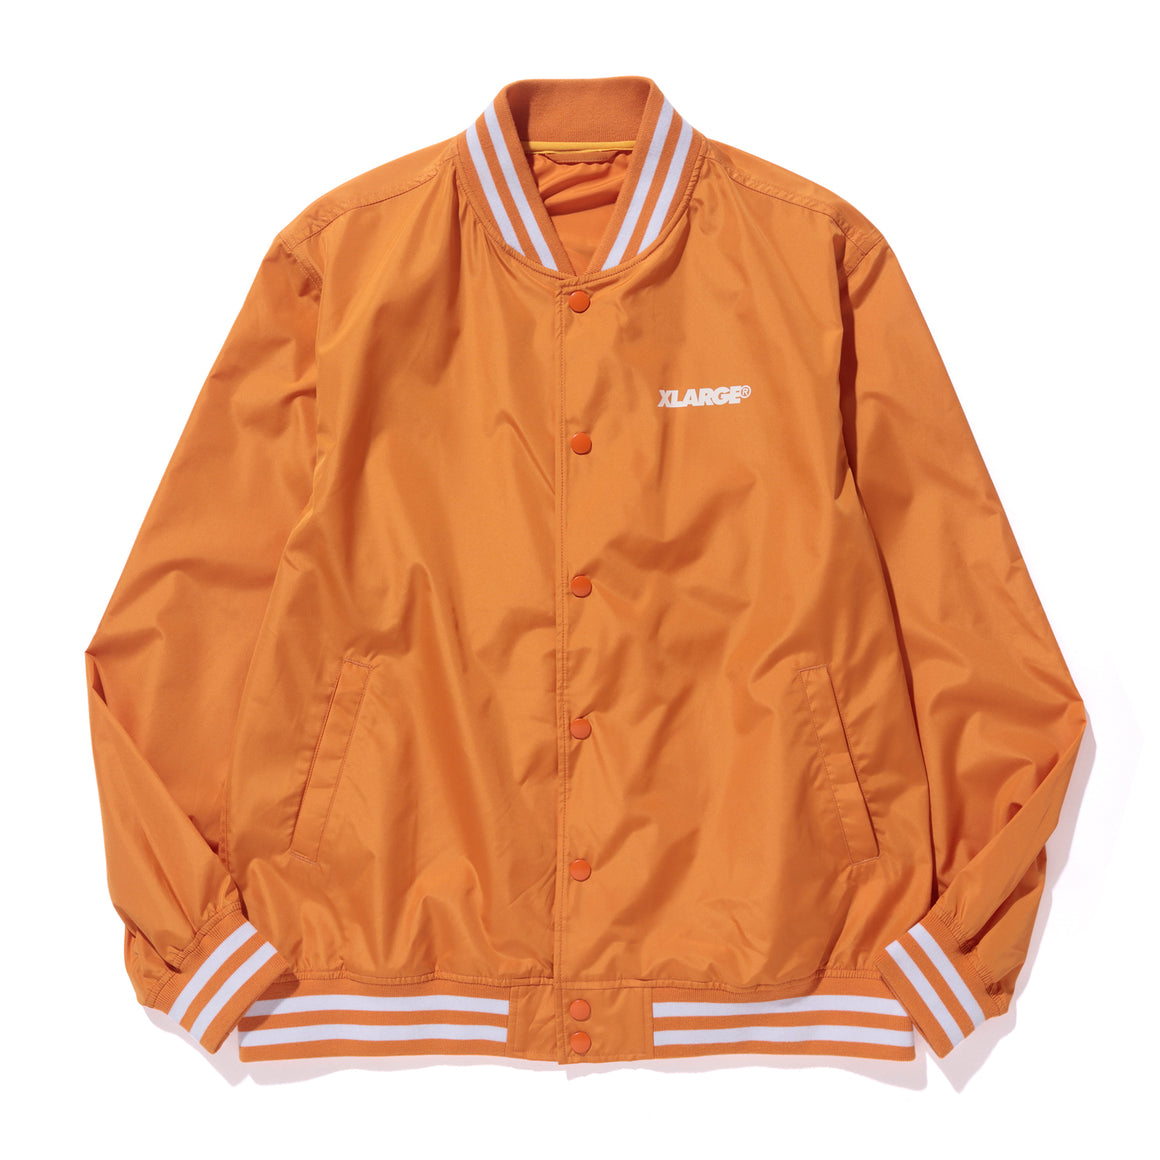 SLANTED OG VARSITY JACKET - X-Large Clothing